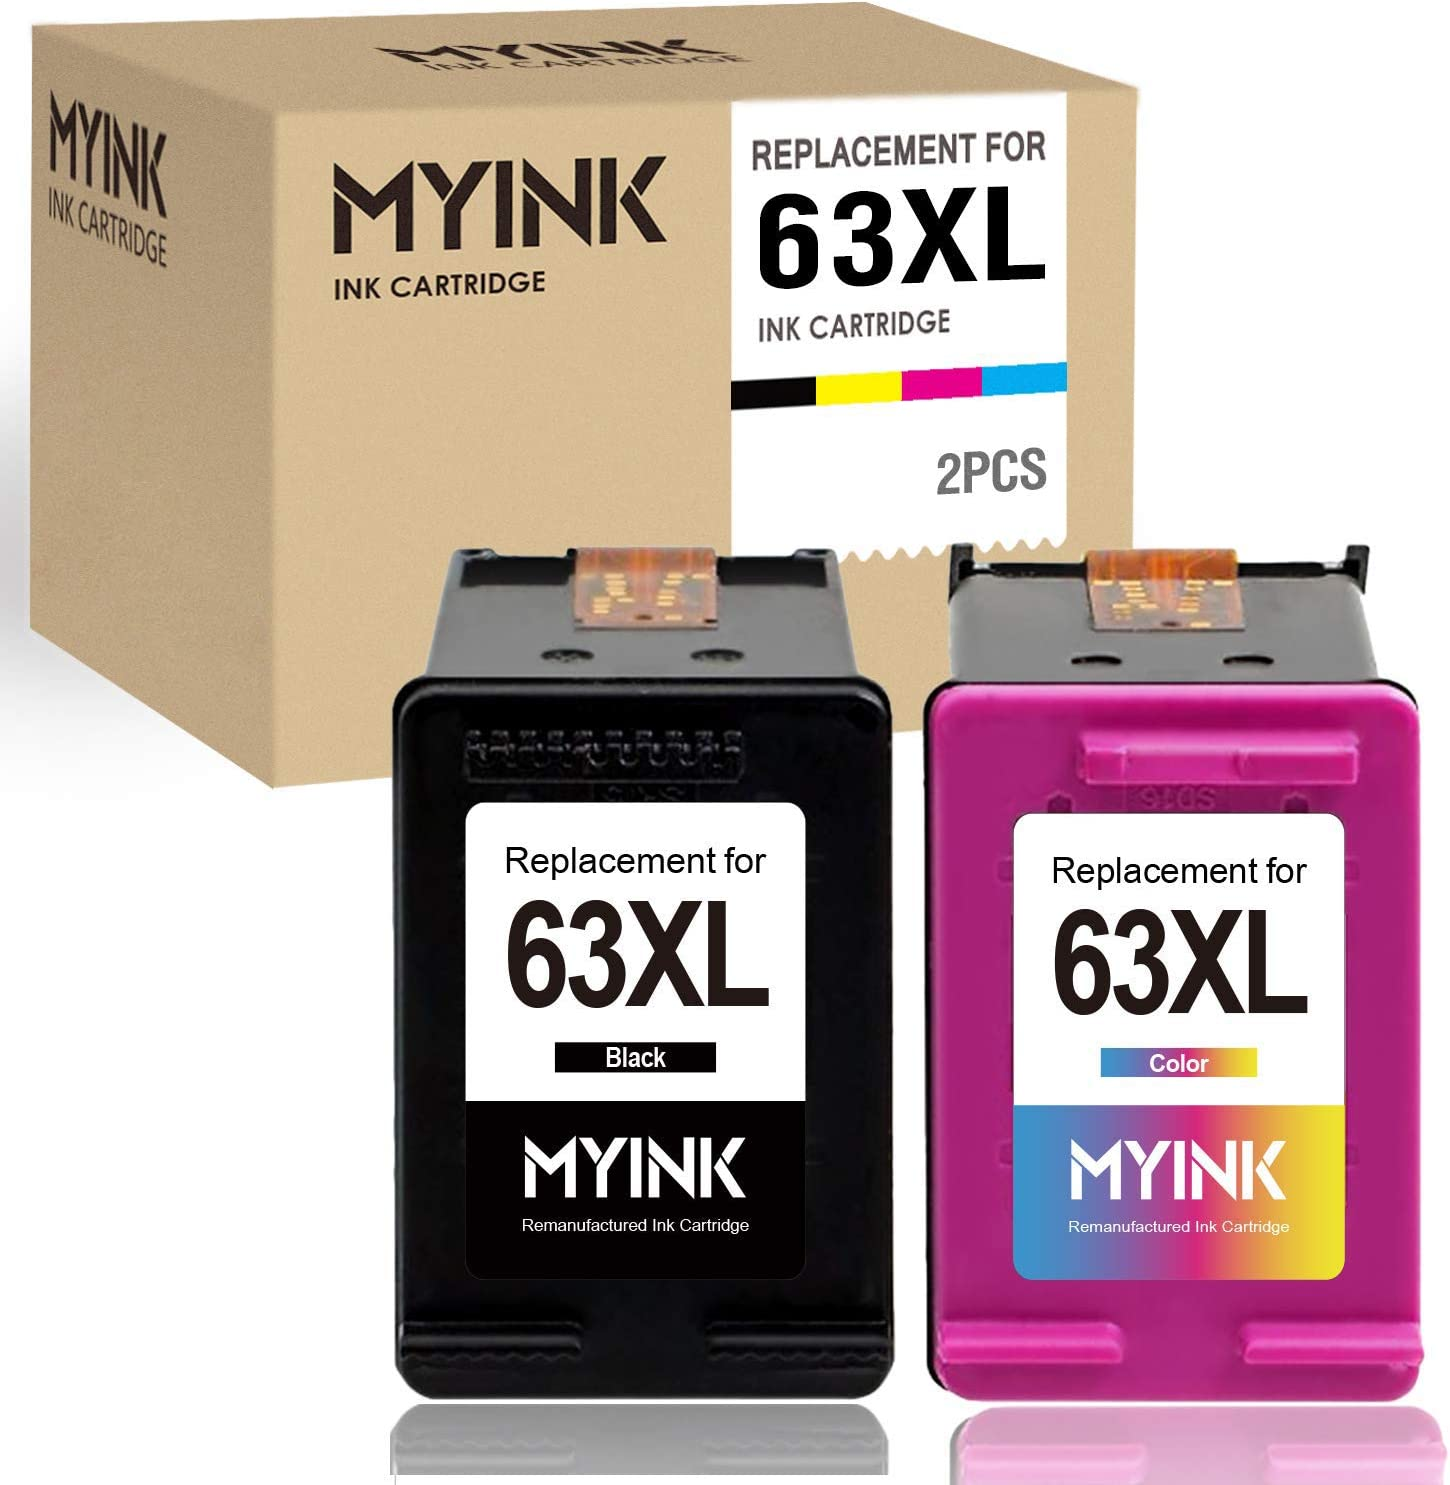 MYINK Remanufactured Ink Cartridge Replacement for HP 63 XL 63XL 1 Black 1 Color, 2 Pack Fit Printer 4520 5255 3830 5258 4650 1112 4655 3630 3631 4652 4512 3632